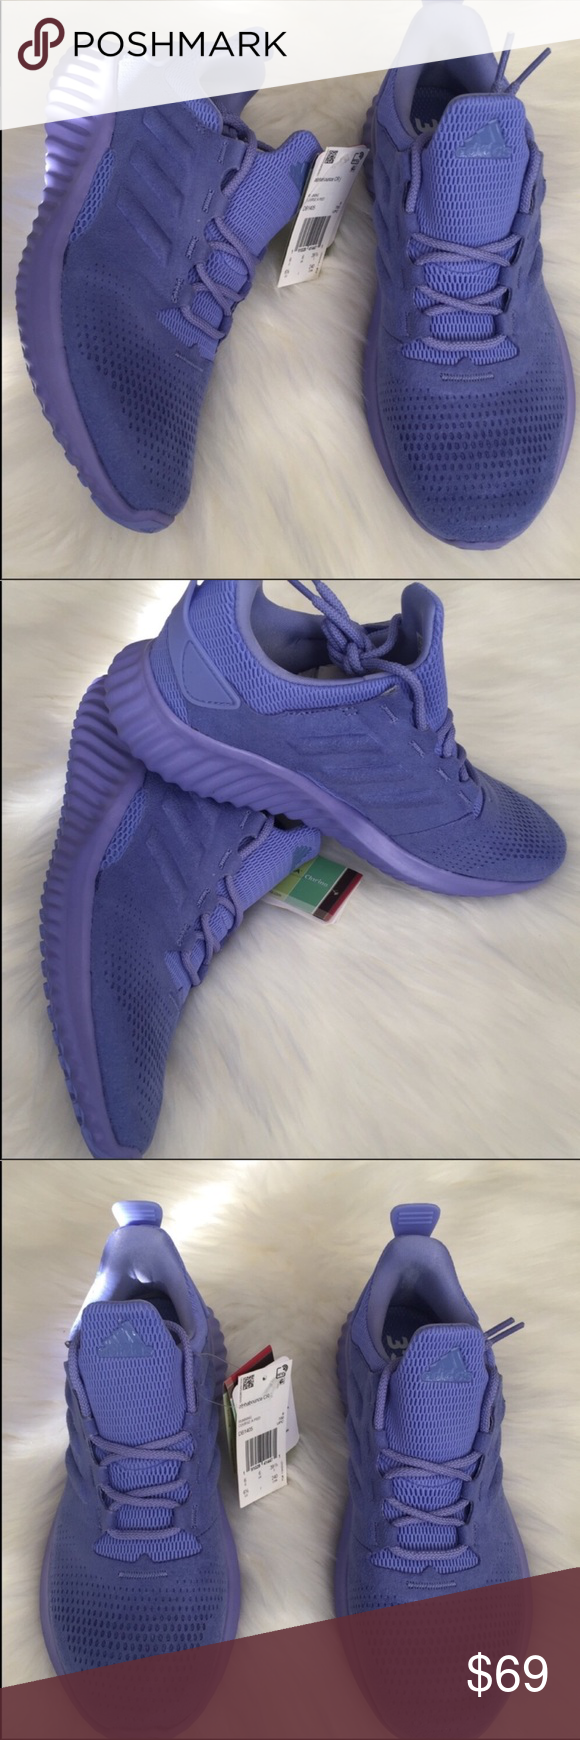 845ca69ce Adidas Alphabounce Youth Size 6.5 NEW Youth Size 6.5  Women s 8 adidas  Shoes Sneakers